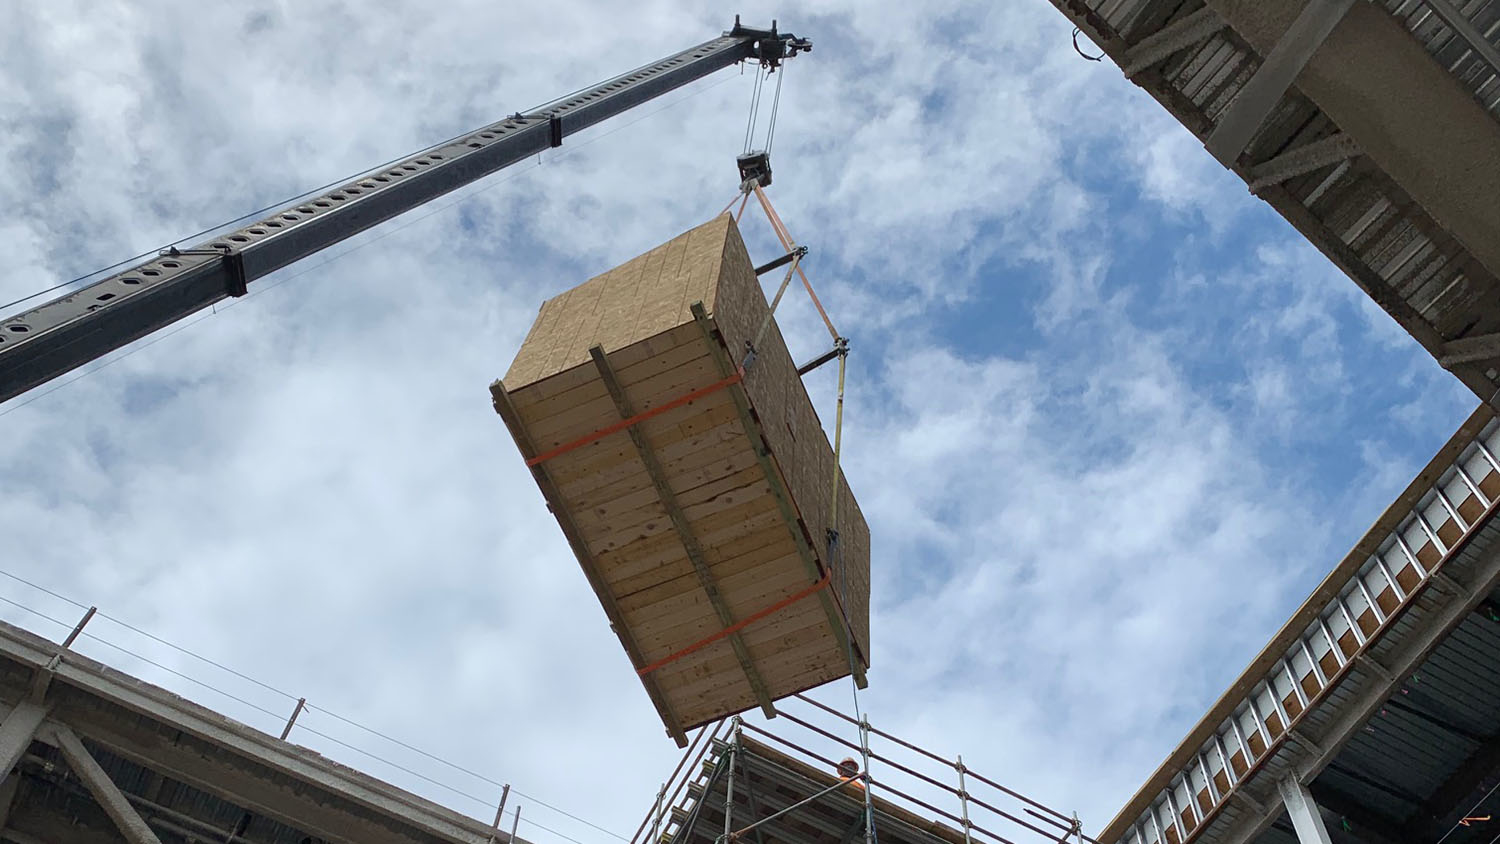 A wooden crate being hoisted by a crane into a building with a blue sky.